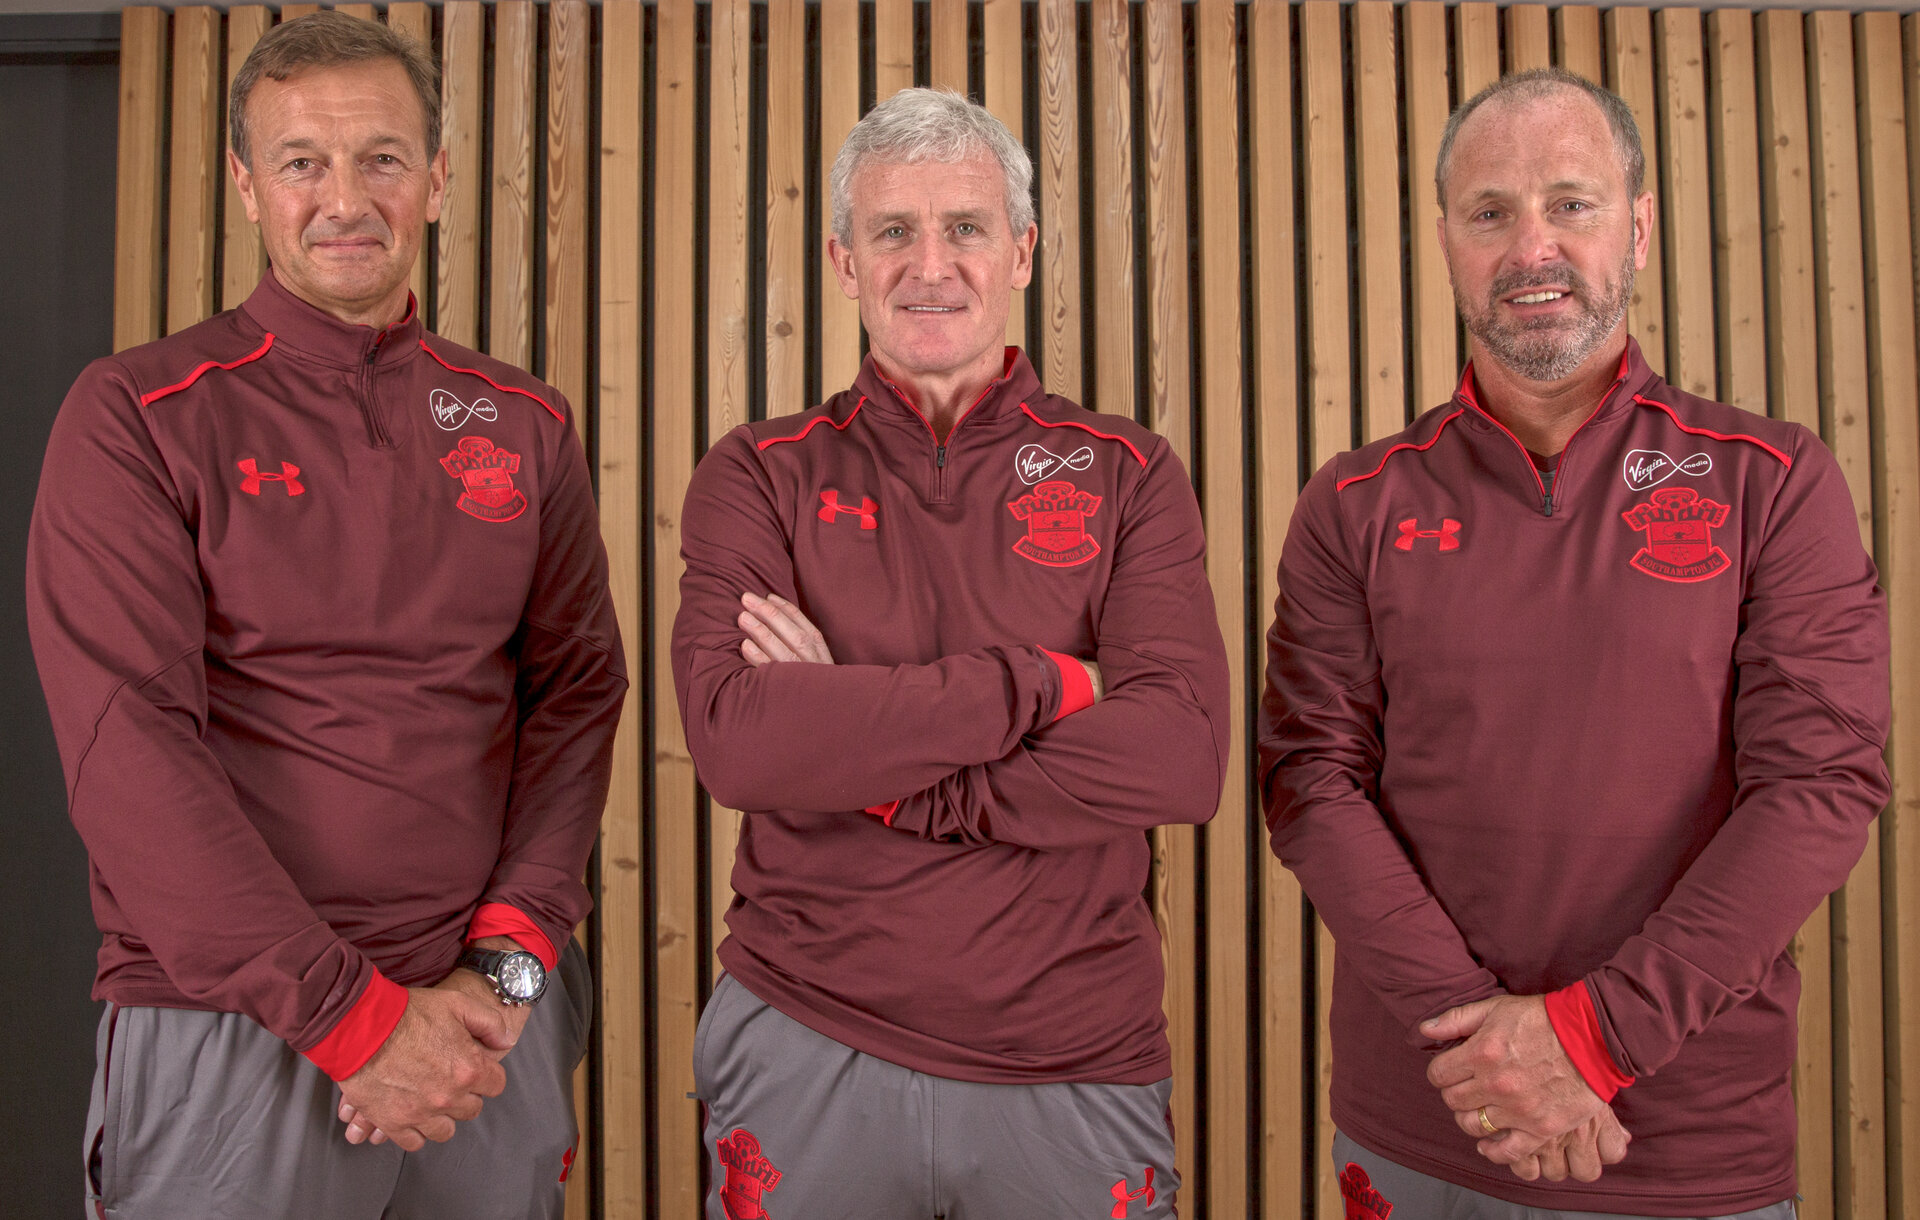 Southampton FC coaching staff pictured L to R Eddie Niedzwiecki, Mark Hughes and Mark Bowen at the Staplewood Campus, Southampton, 15th March 2018